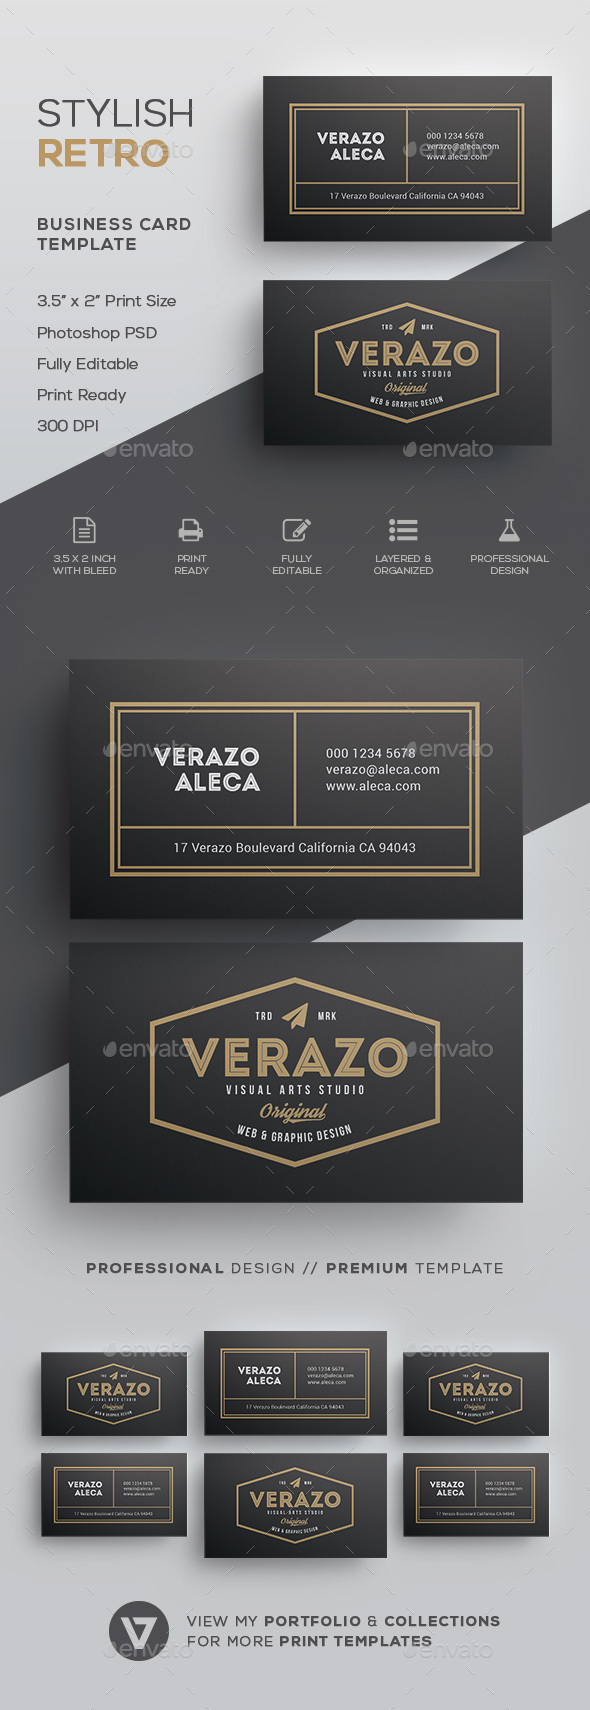 Vintage business card templates designs from graphicriver wajeb